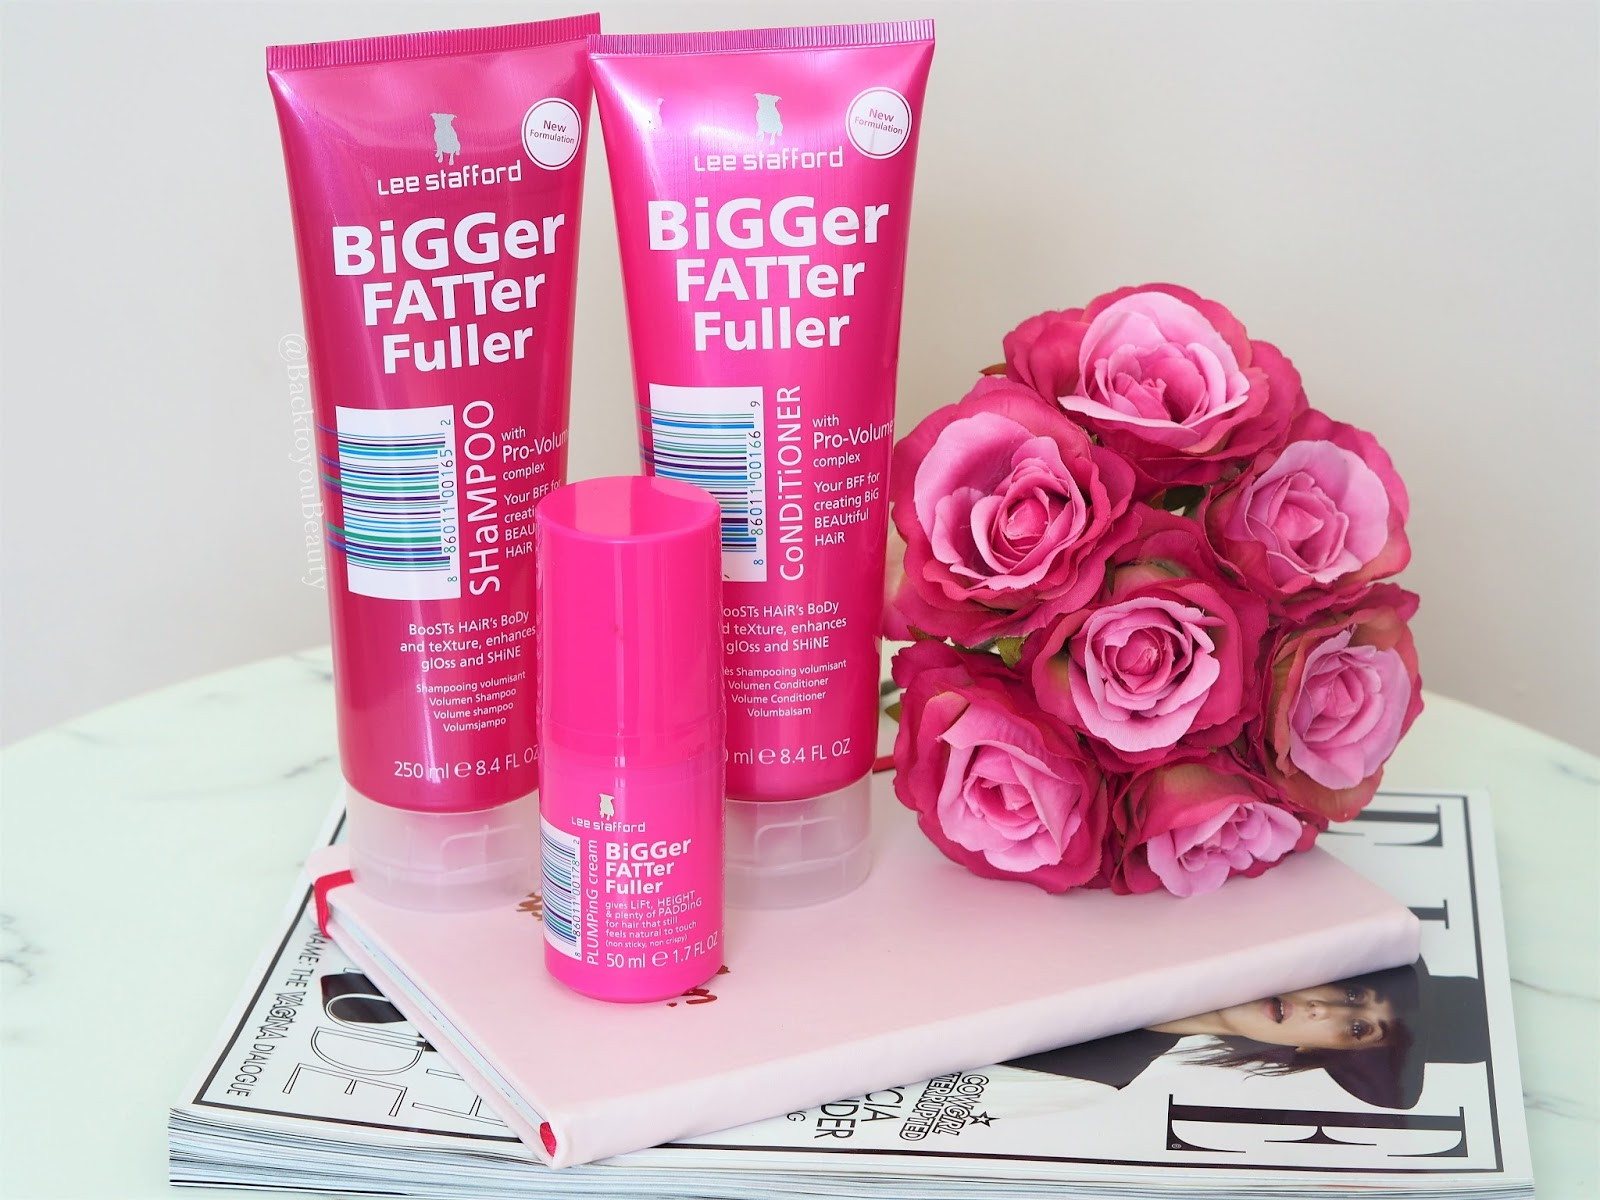 Lee Stafford Bigger Fatter Fuller Haircare Collection